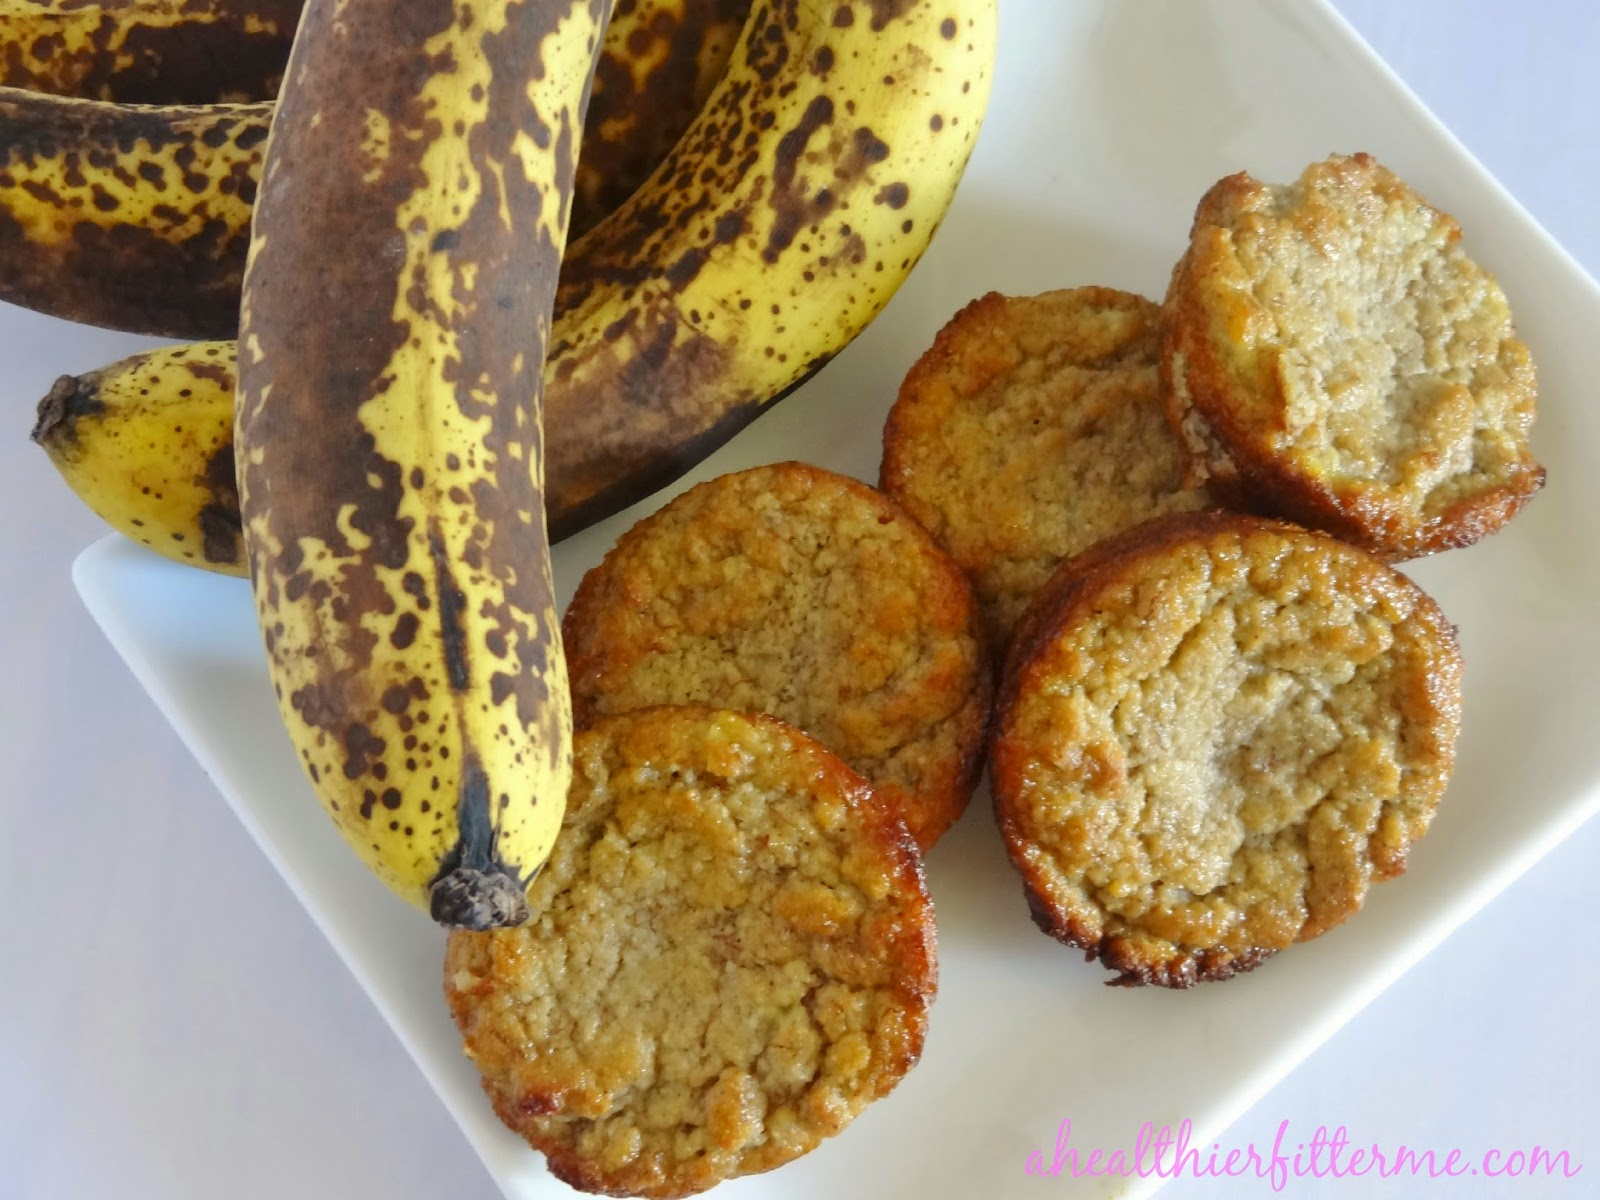 http://www.ahealthierfitterme.com/2014/08/paleo-banana-muffins.html